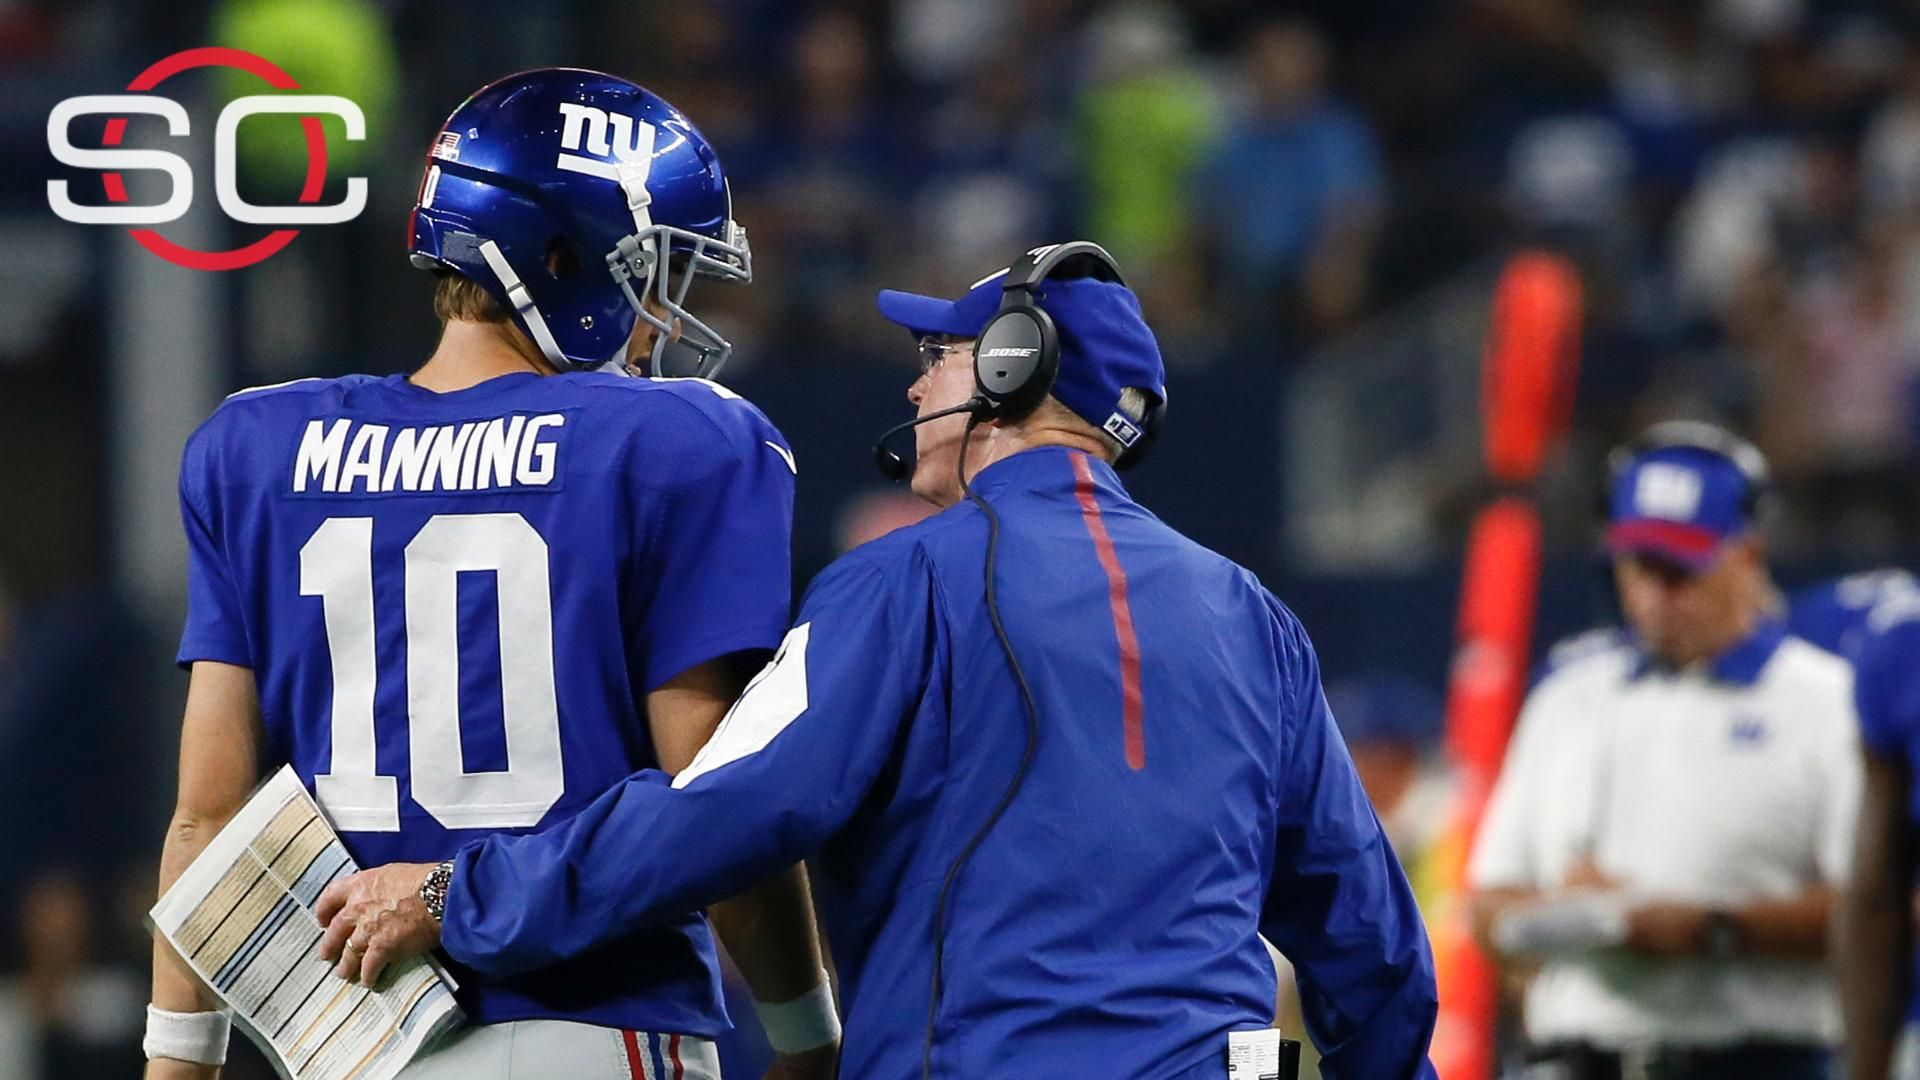 ee715663 Rashad Jennings of New York Giants says he was told not to score at ...